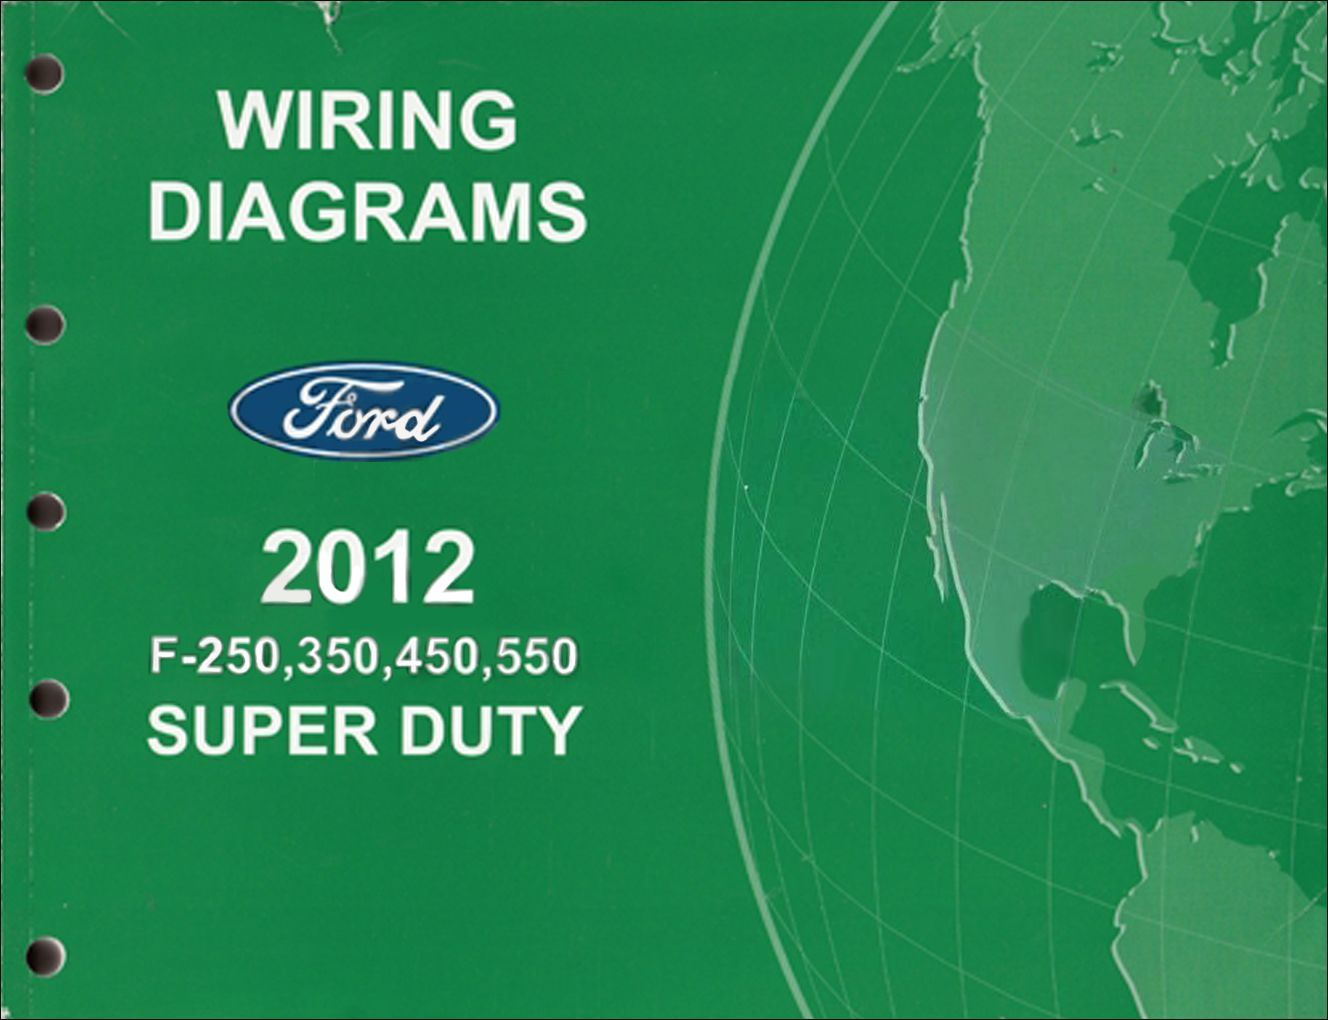 hight resolution of 2012 ford f 250 thru 550 super duty wiring diagram manual original 2002 ford f250 wire diagram ford f250 wire diagram